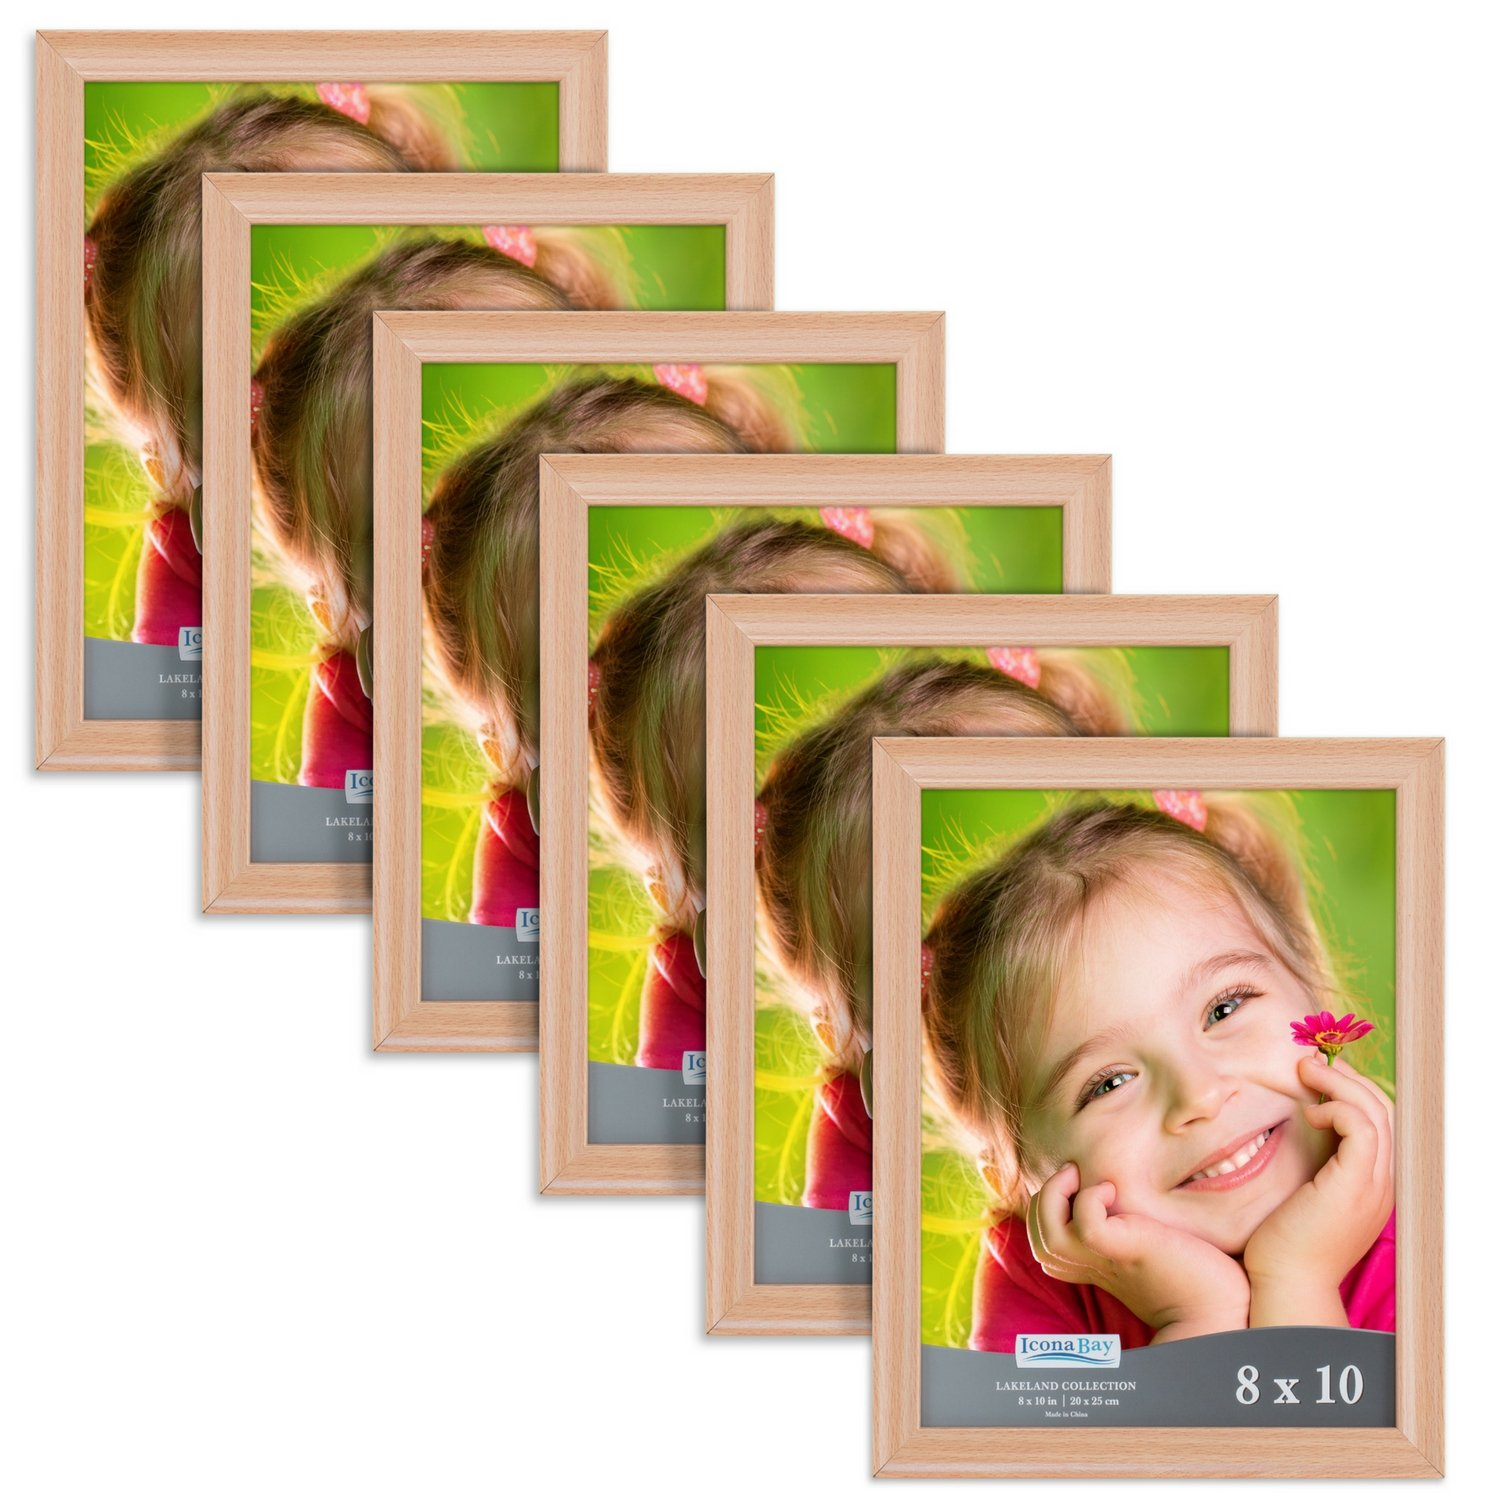 Icona Bay 8x10 Picture Frame (6 Pack, Beechwood Finish), Photo Frame 8 x 10, Composite Wood Frame for Walls or Tables, Set of 6 Lakeland Collection by Icona Bay